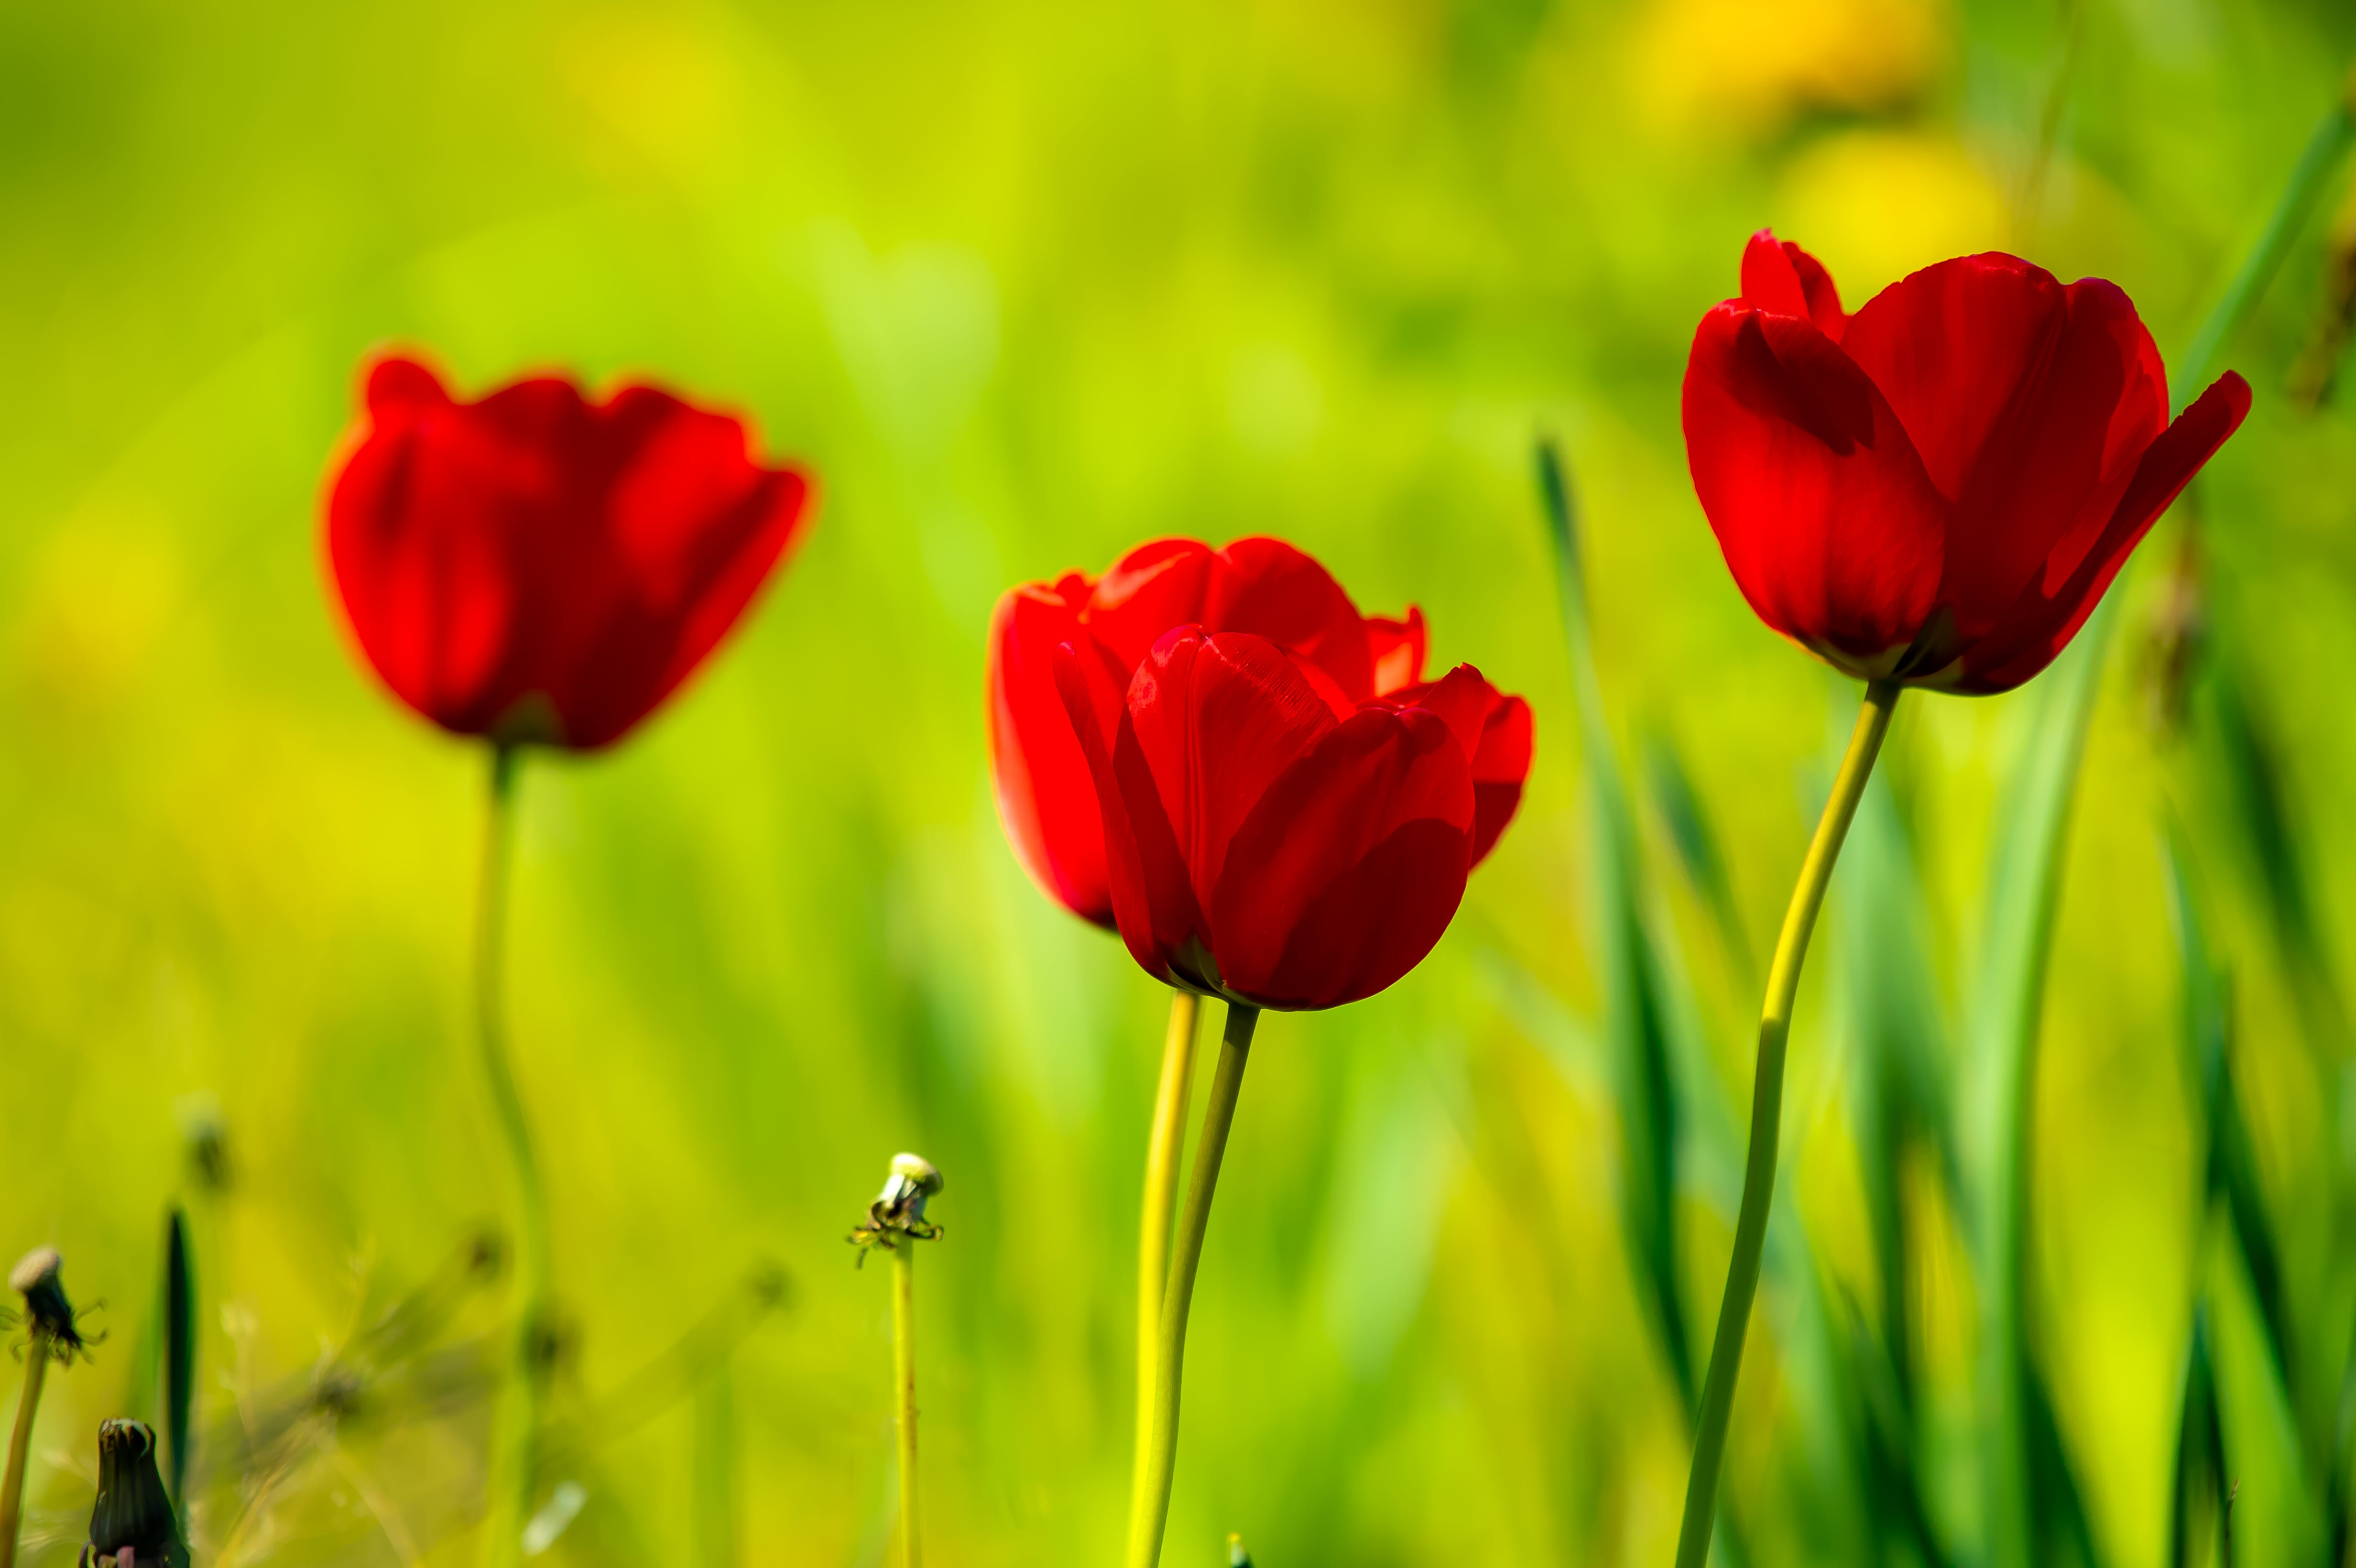 Closeup Photography of Red Tulips